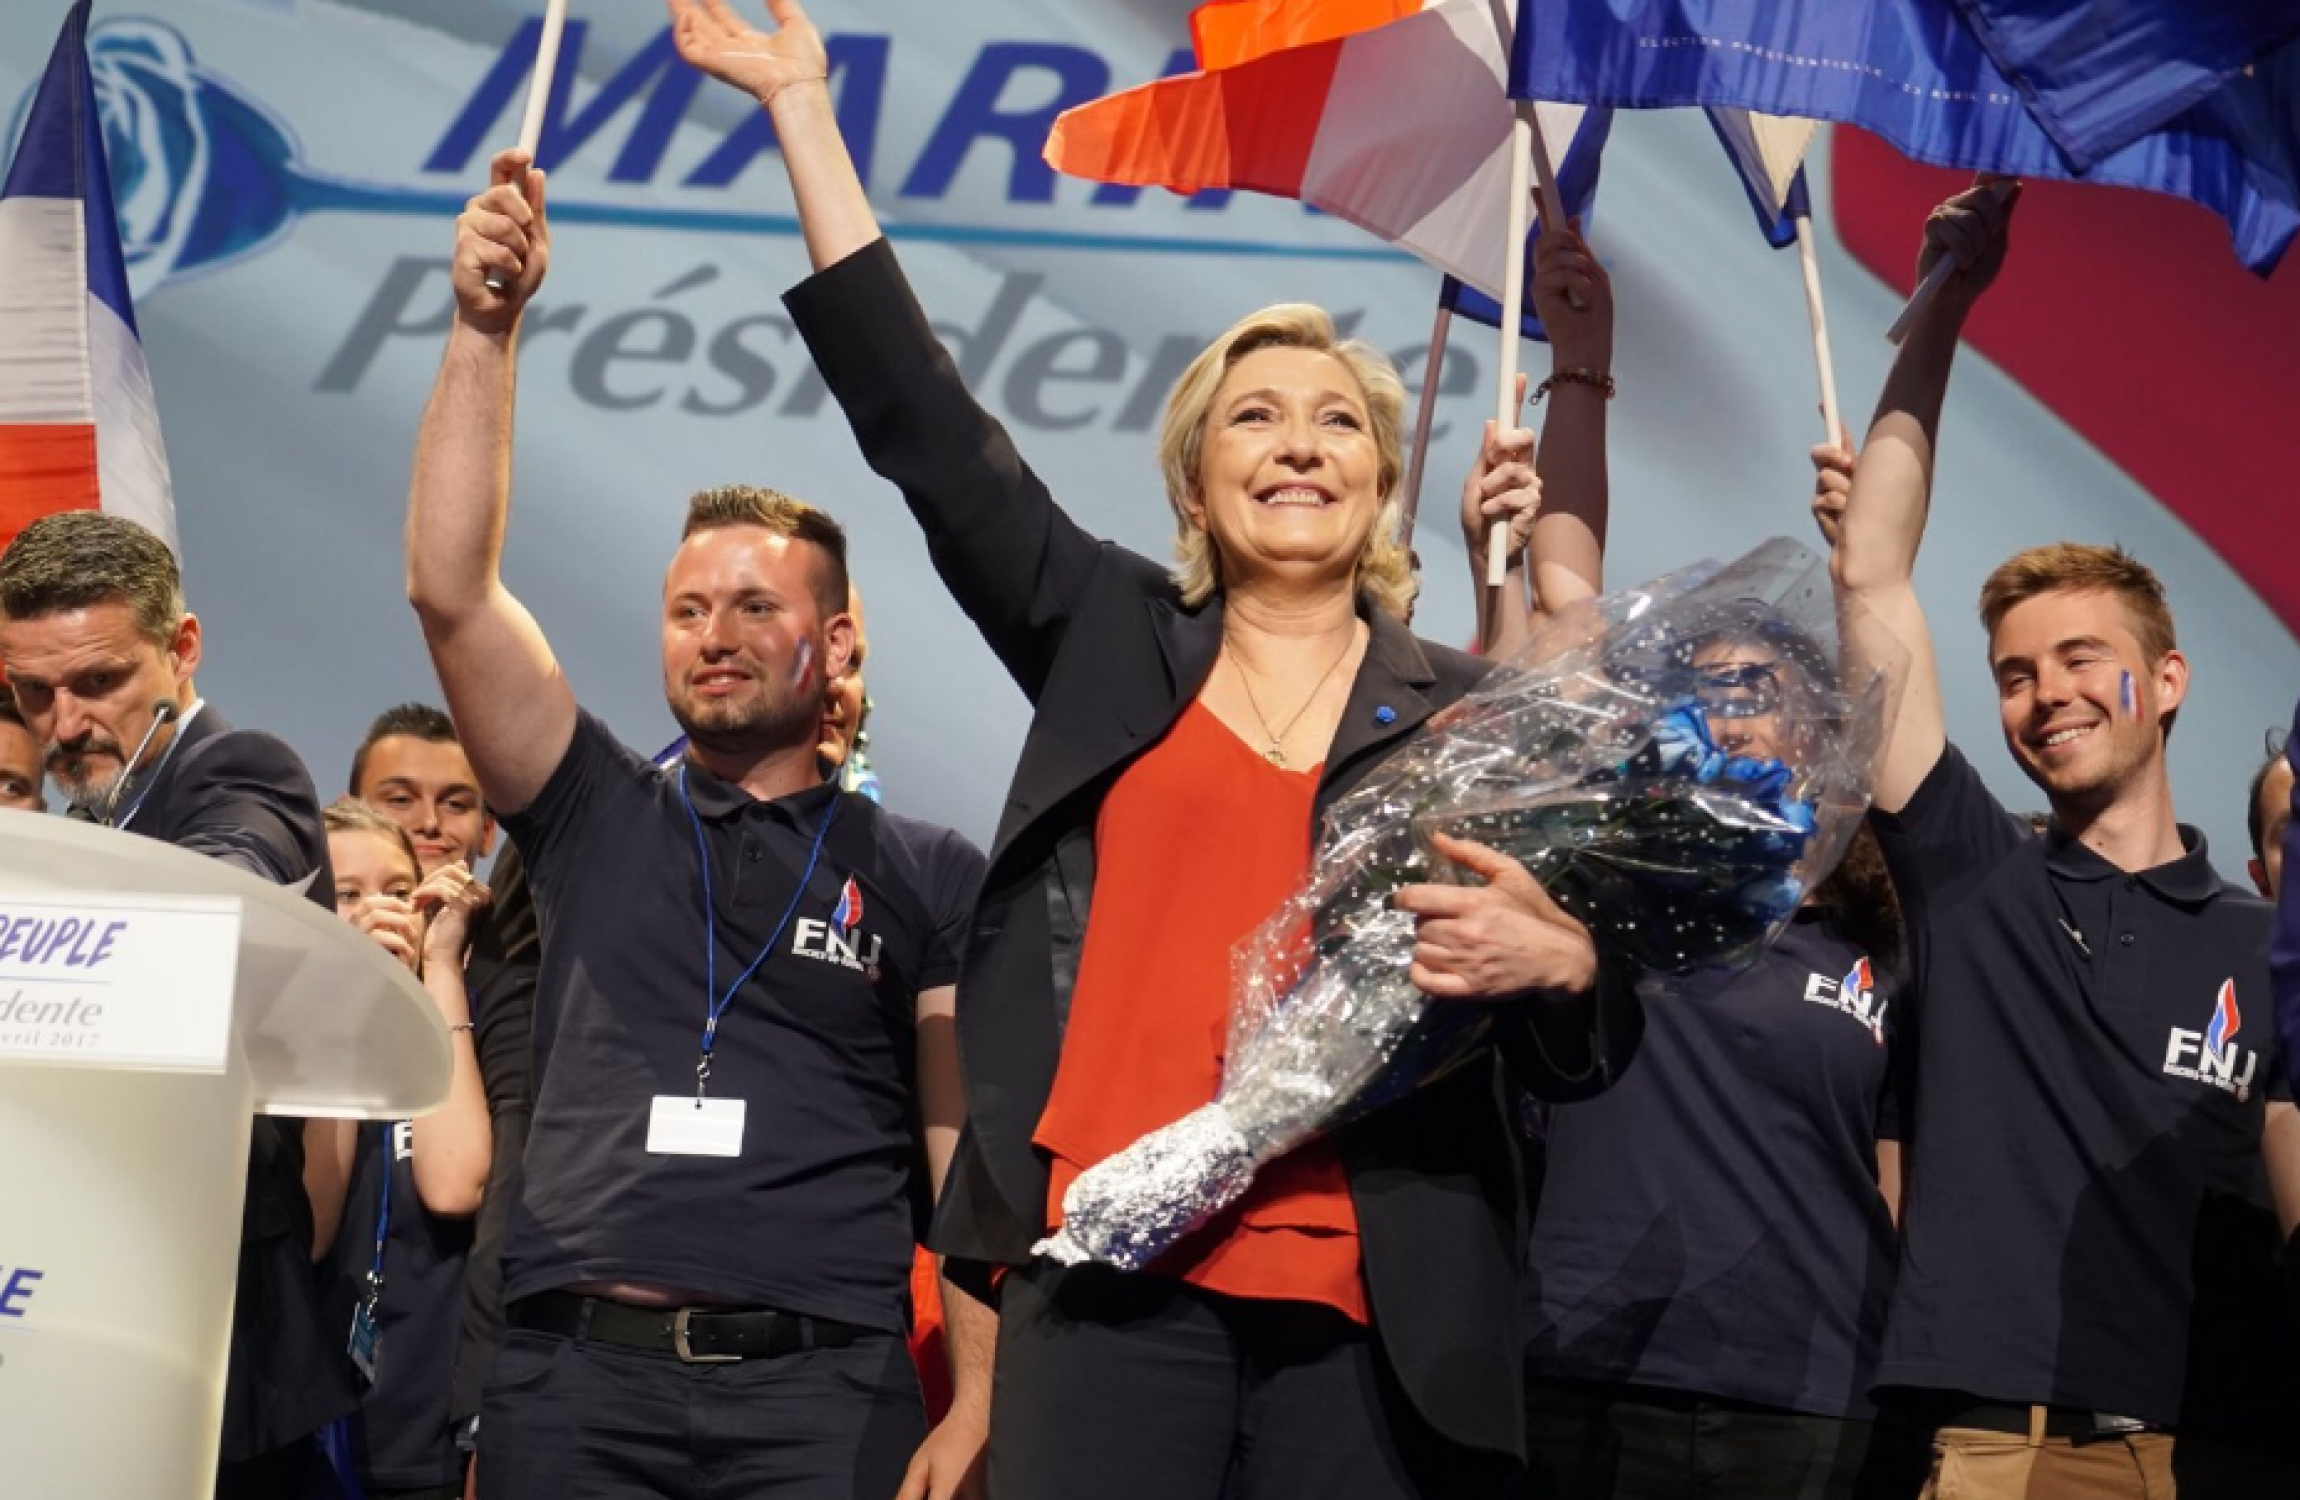 Paris attack will 'probably help' Le Pen in France